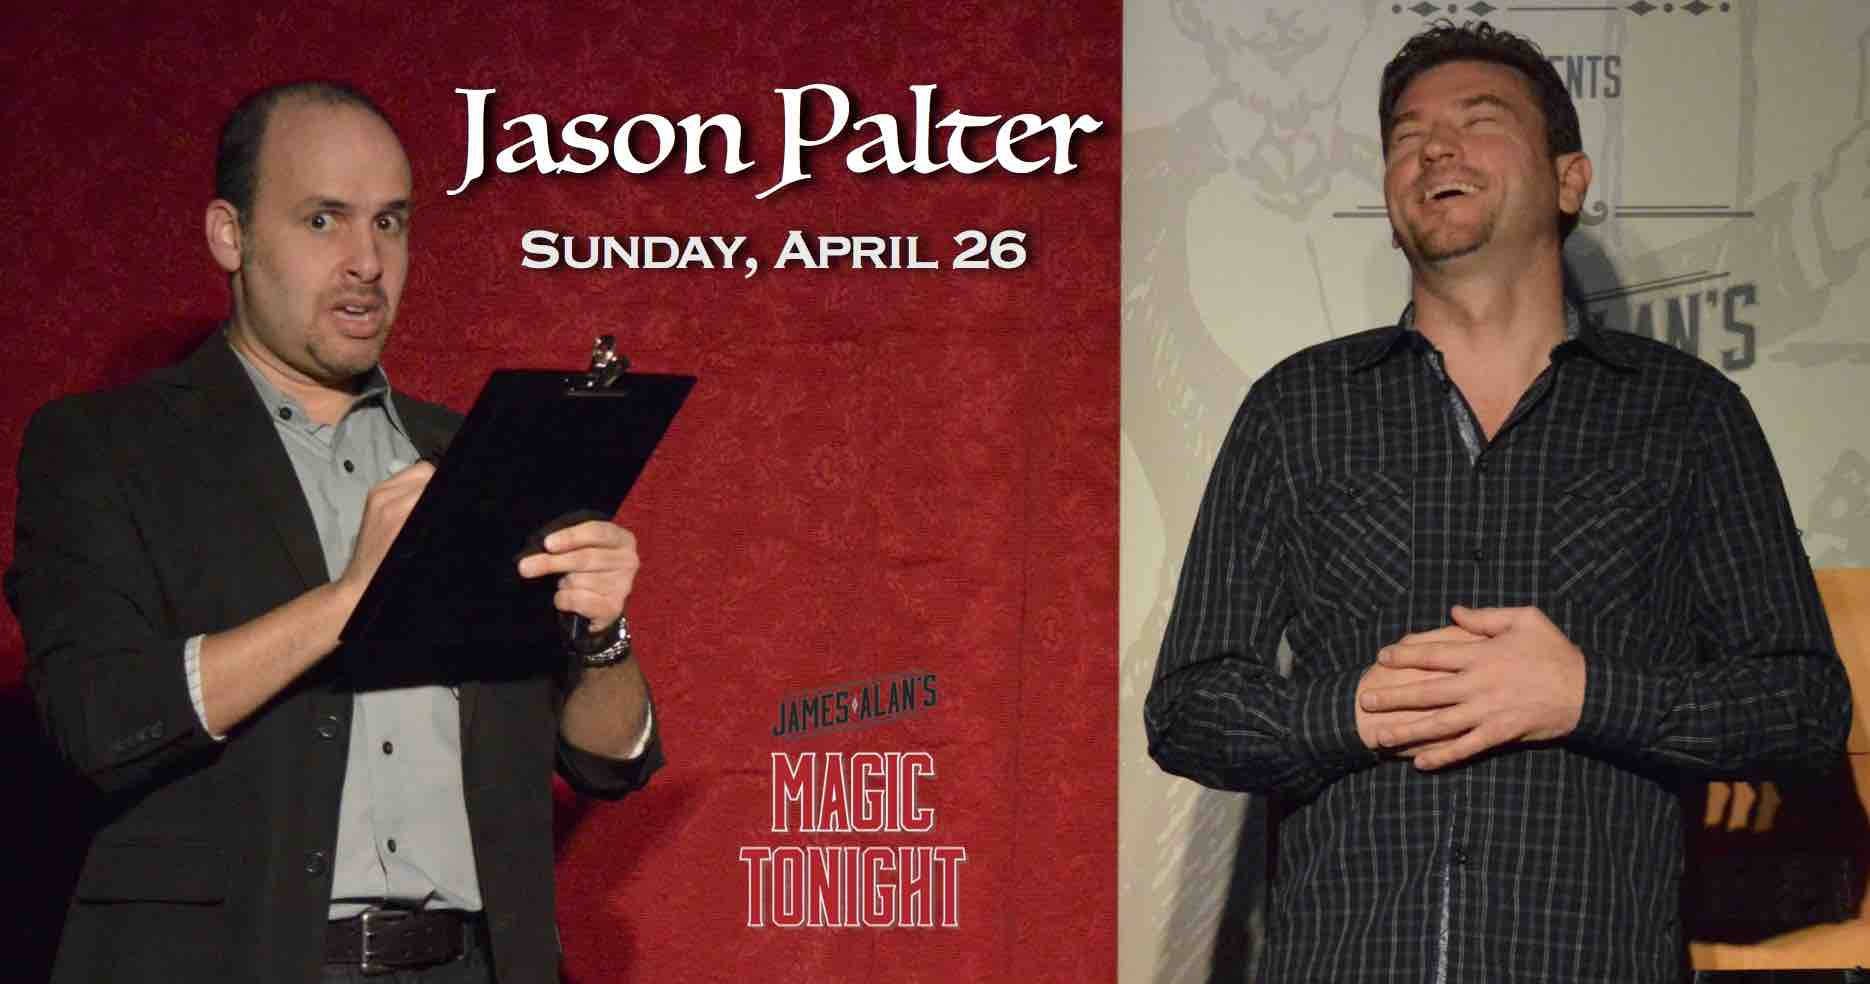 Apr 26 Jason Palter